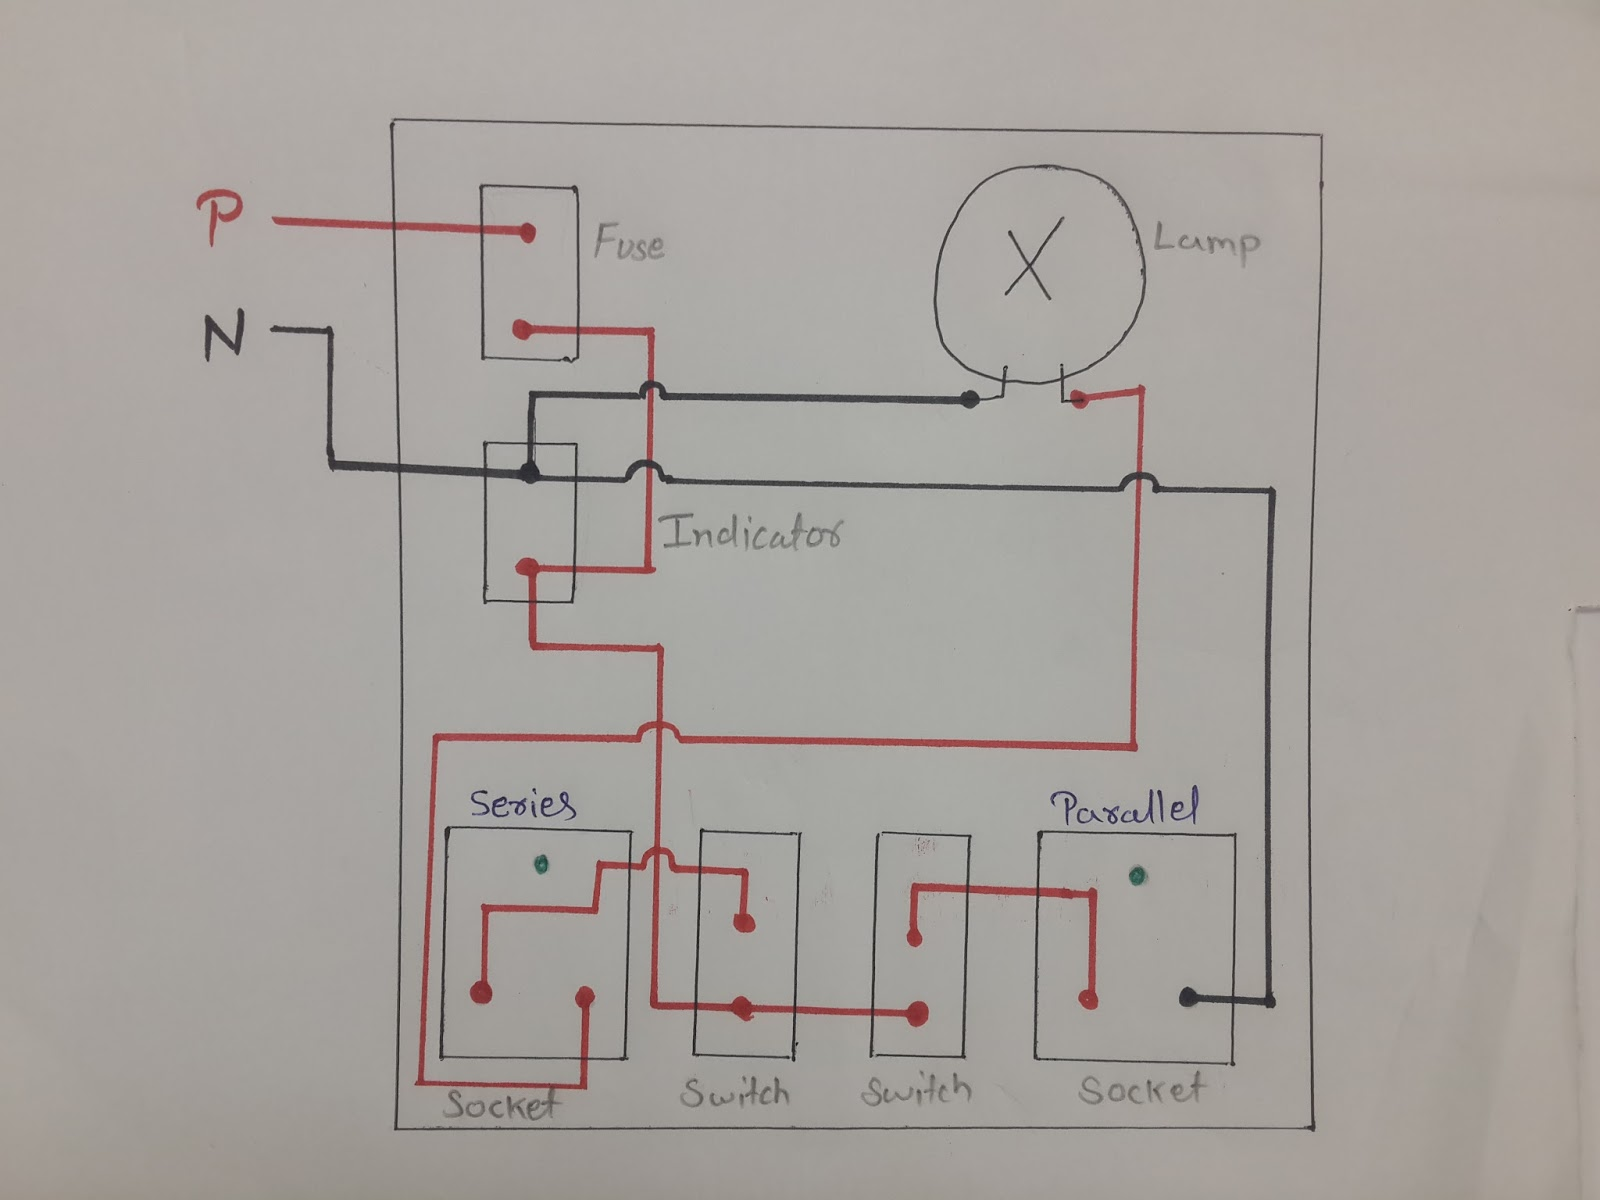 hight resolution of circuit diagram of series test lamp wiring diagram used deepakkumar yadav how series parallel electrical testing